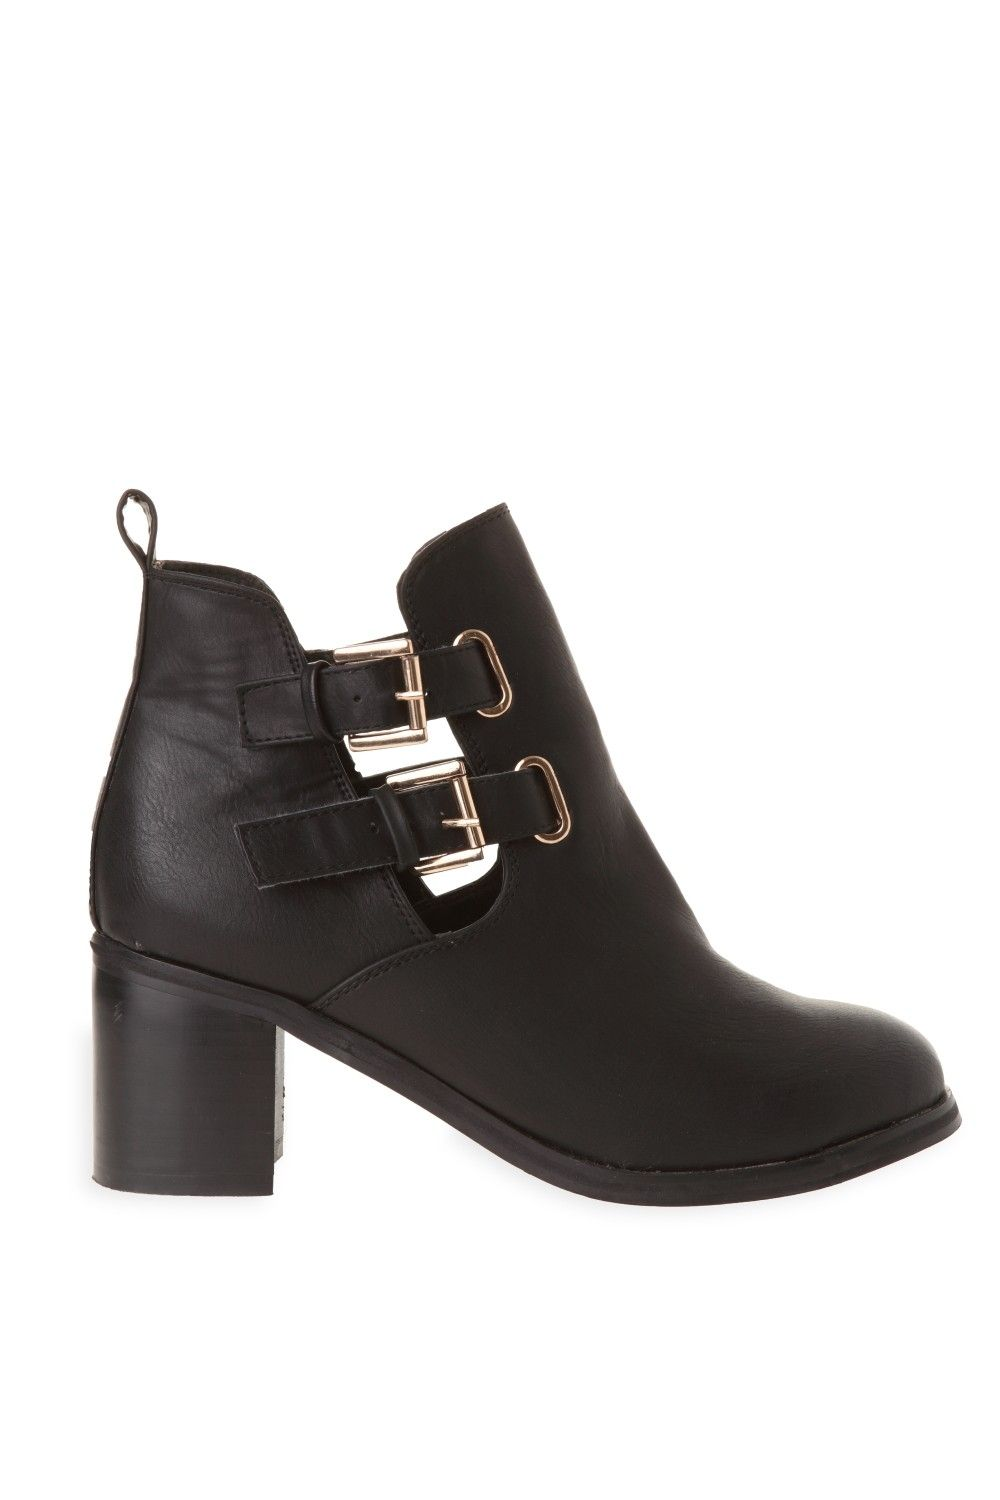 ba7db4b3ab1 Botines Getting There negro by FP - What s New - NEW IN Mochila De Moda